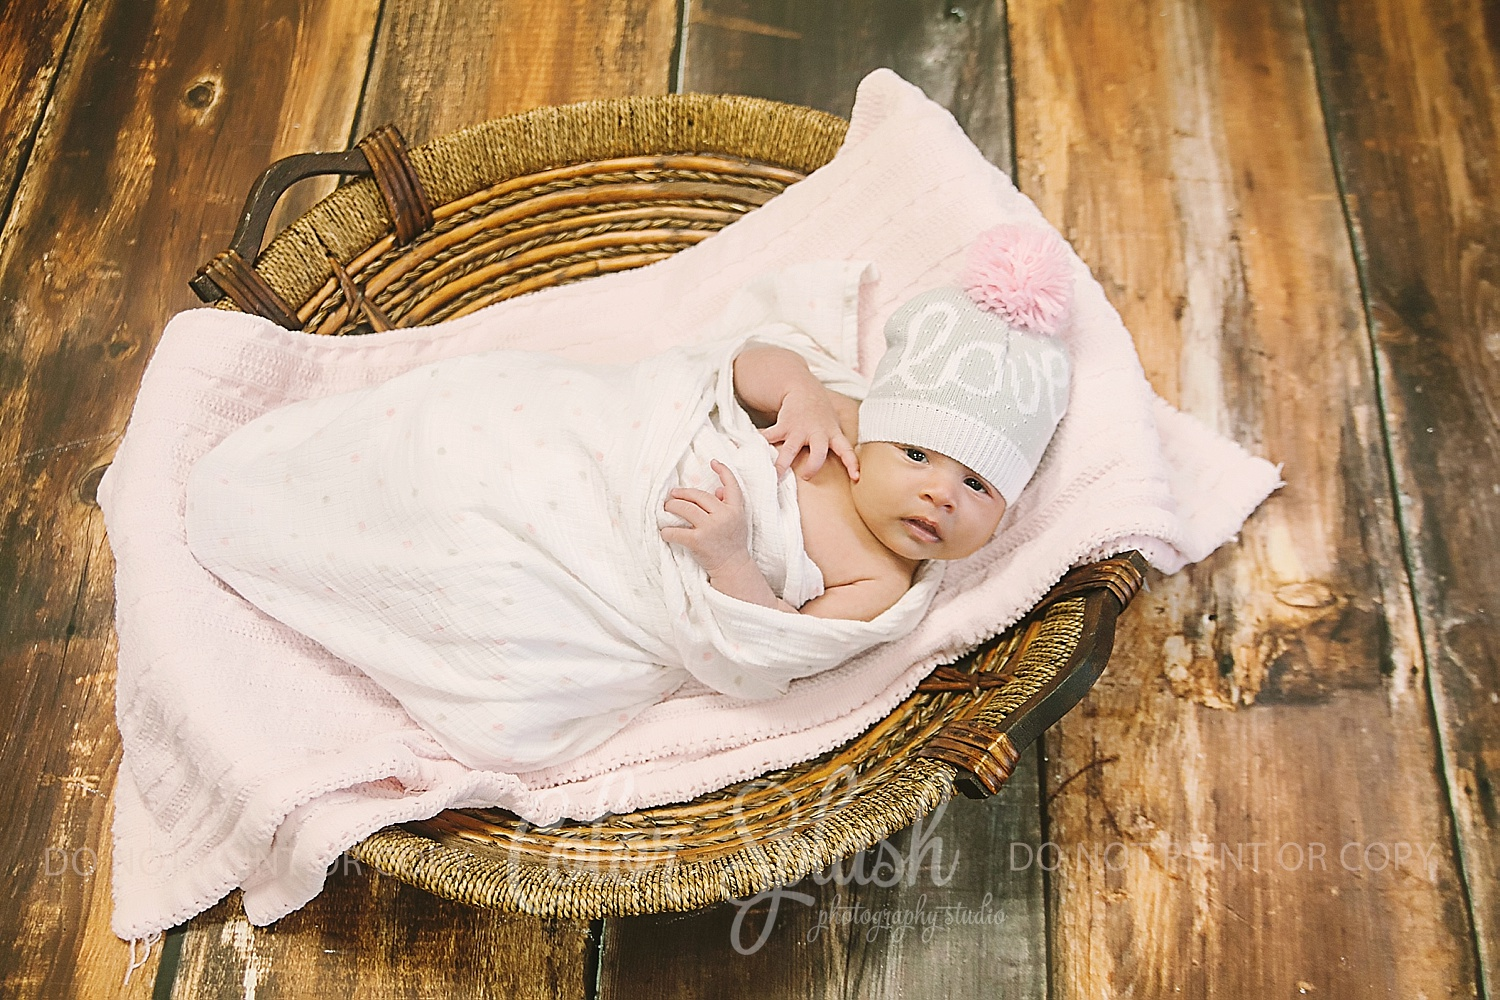 kalamazoo-mi-newborn-photographer_1169